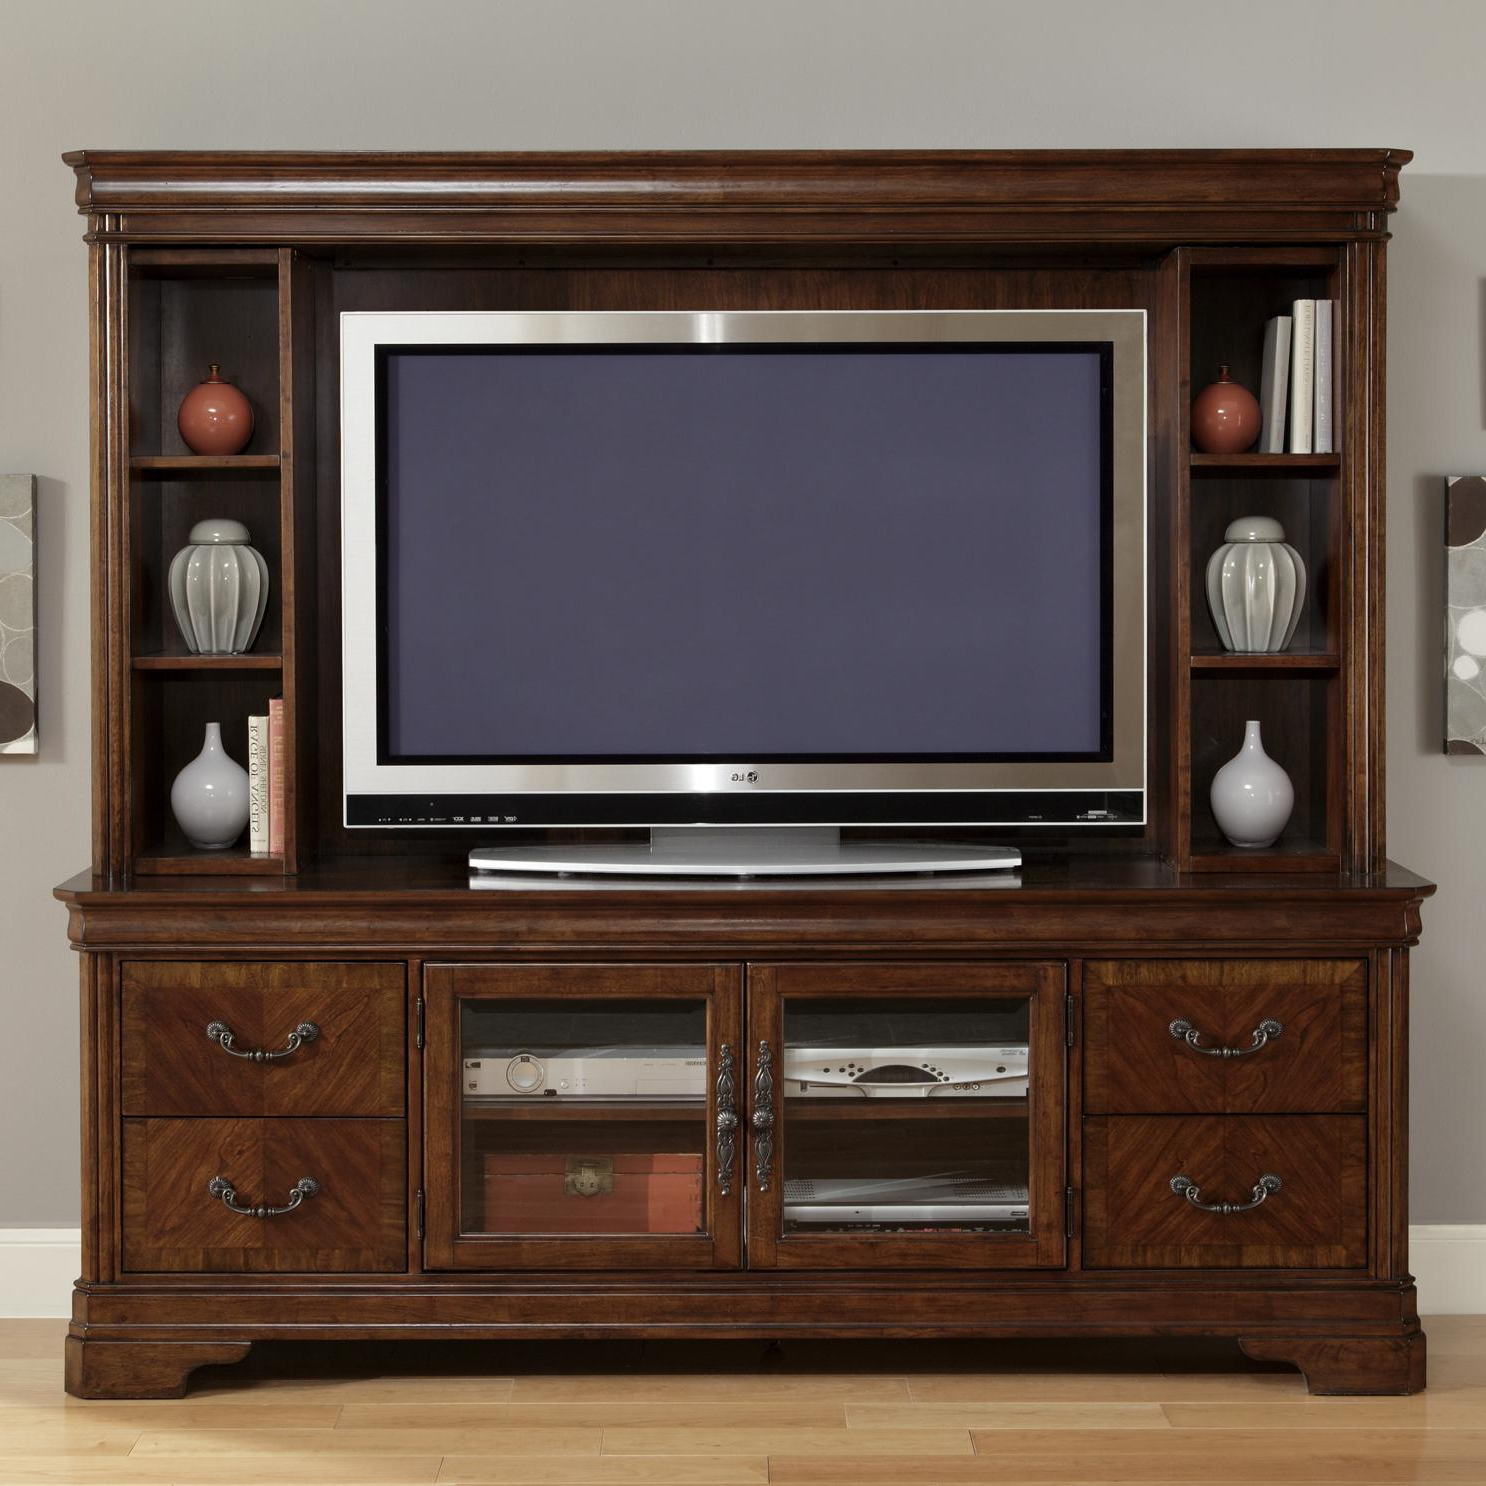 Tv Hutch Cabinets In Well Known Entertainment Tv Stand & Hutchliberty Furniture (View 8 of 20)